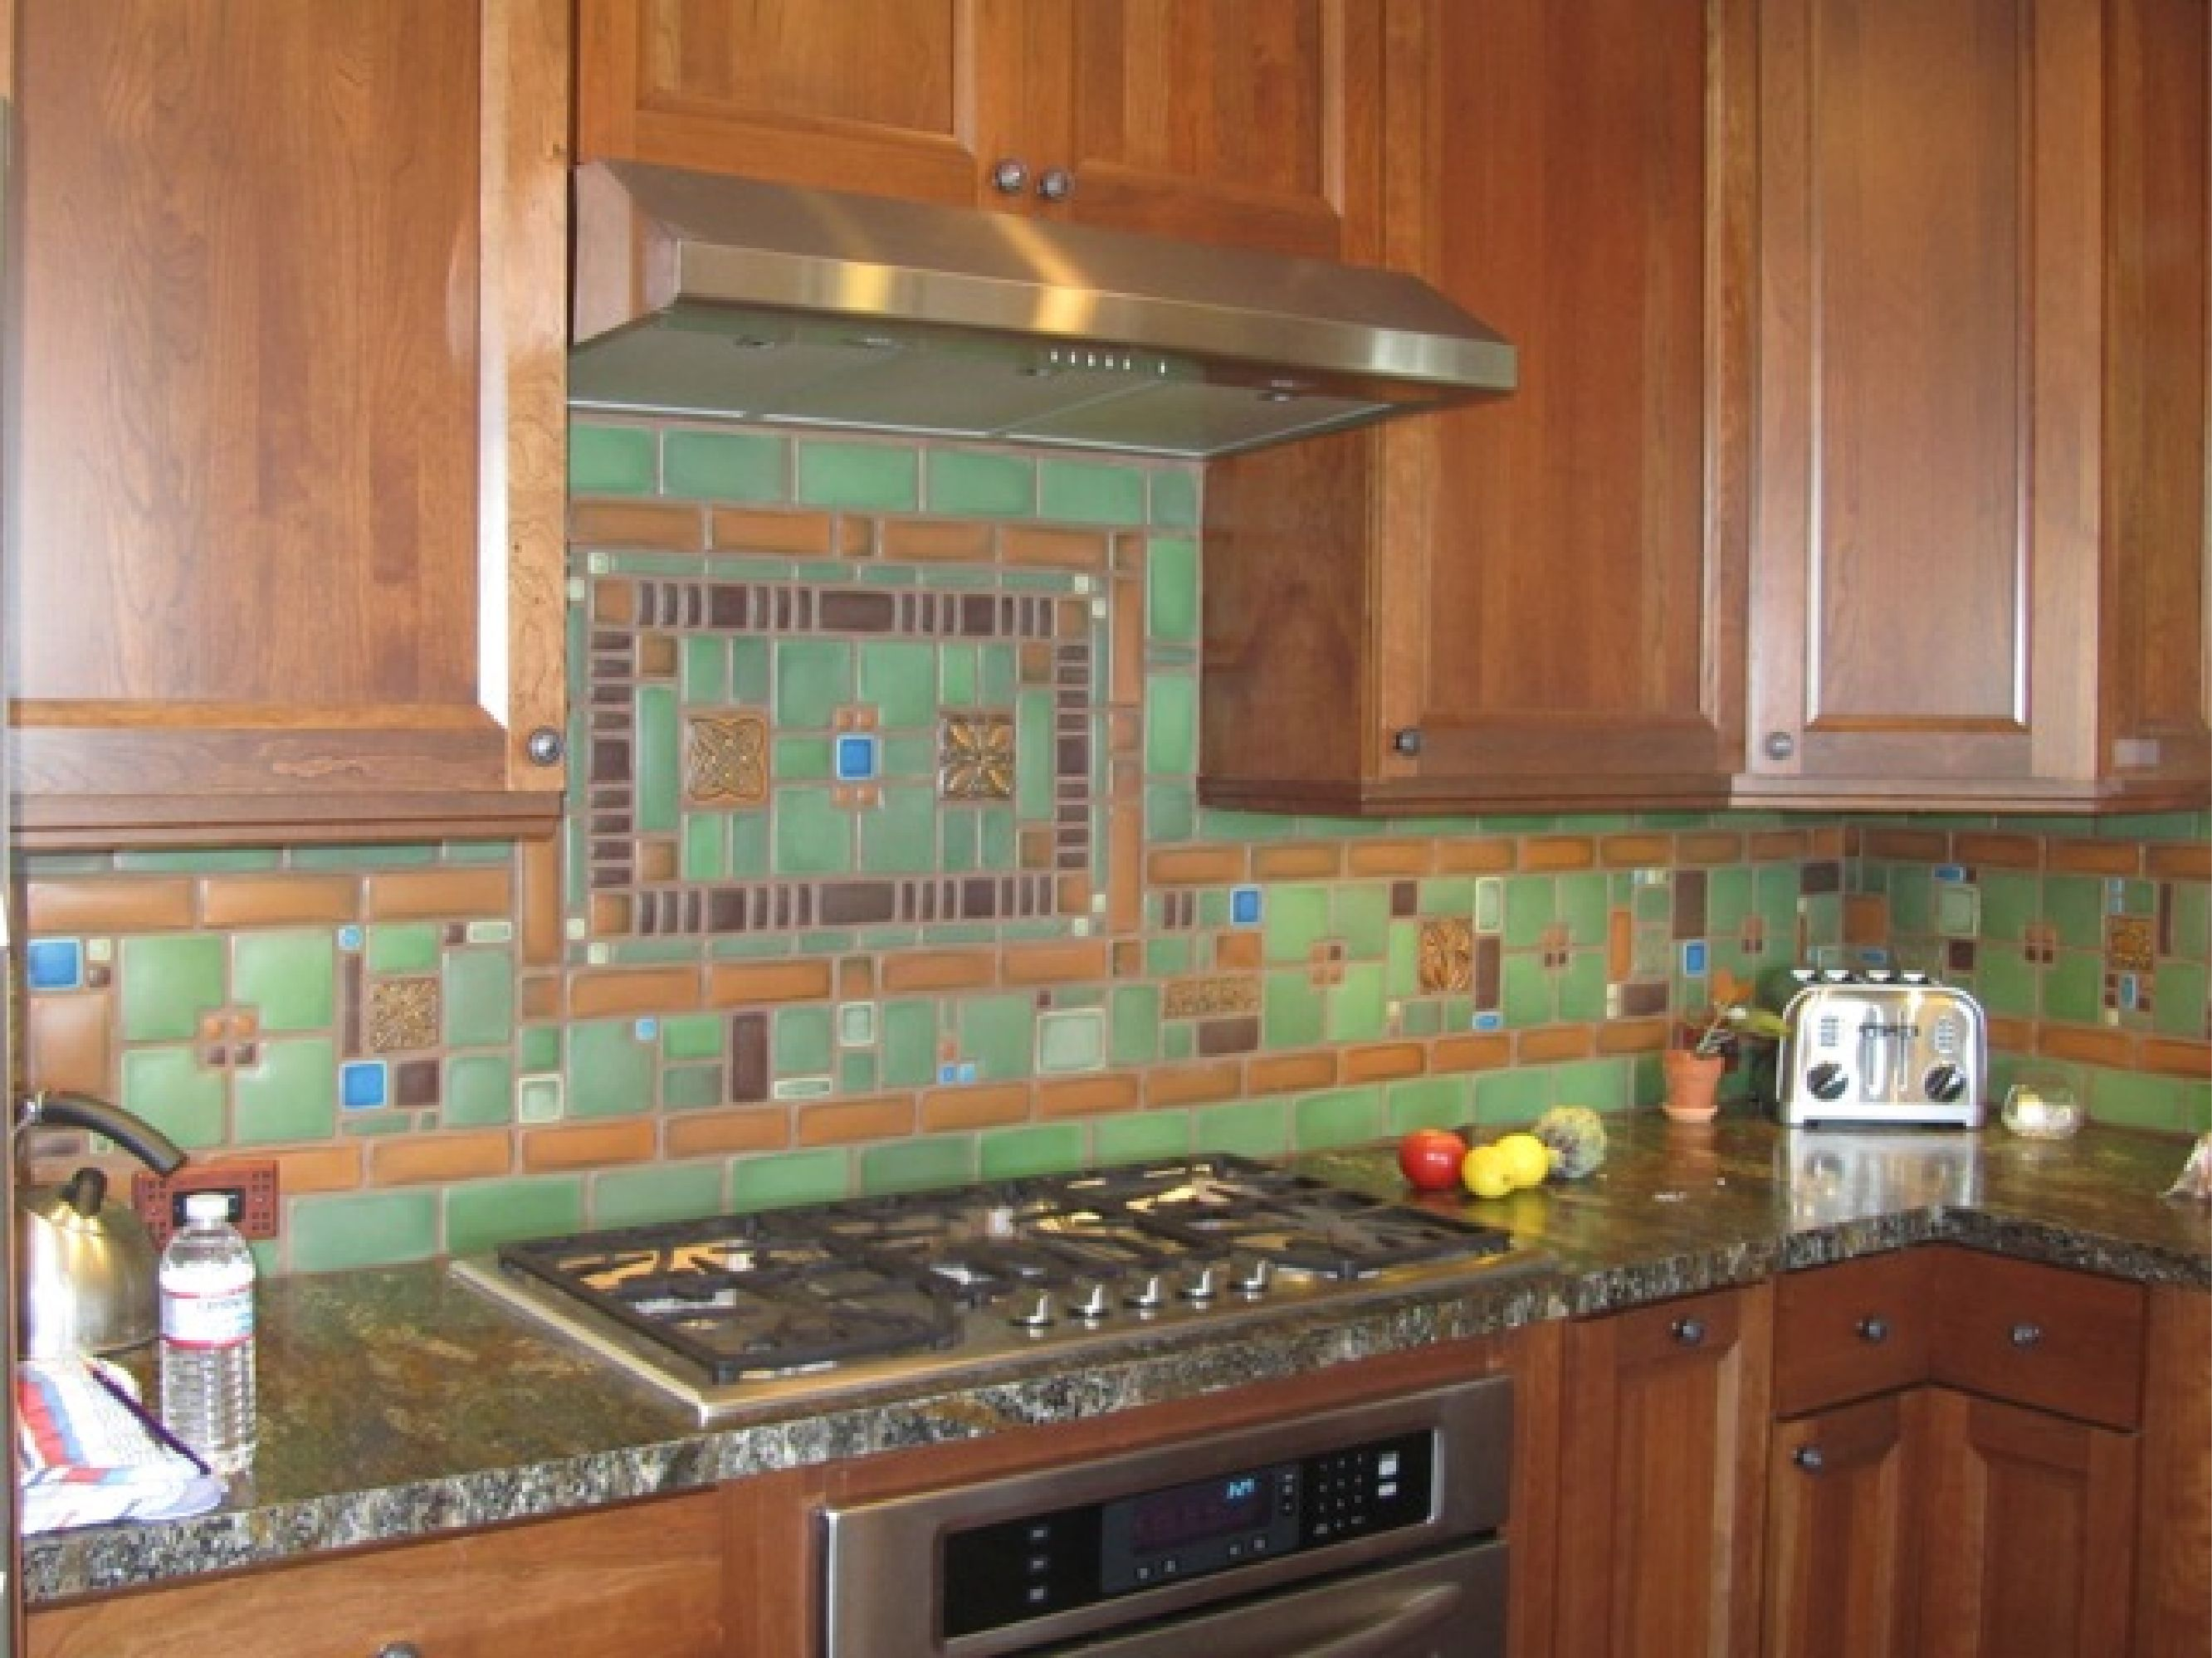 - Motawi Collage Kitchen Backsplash By Tom Gerardy Of Craftsman